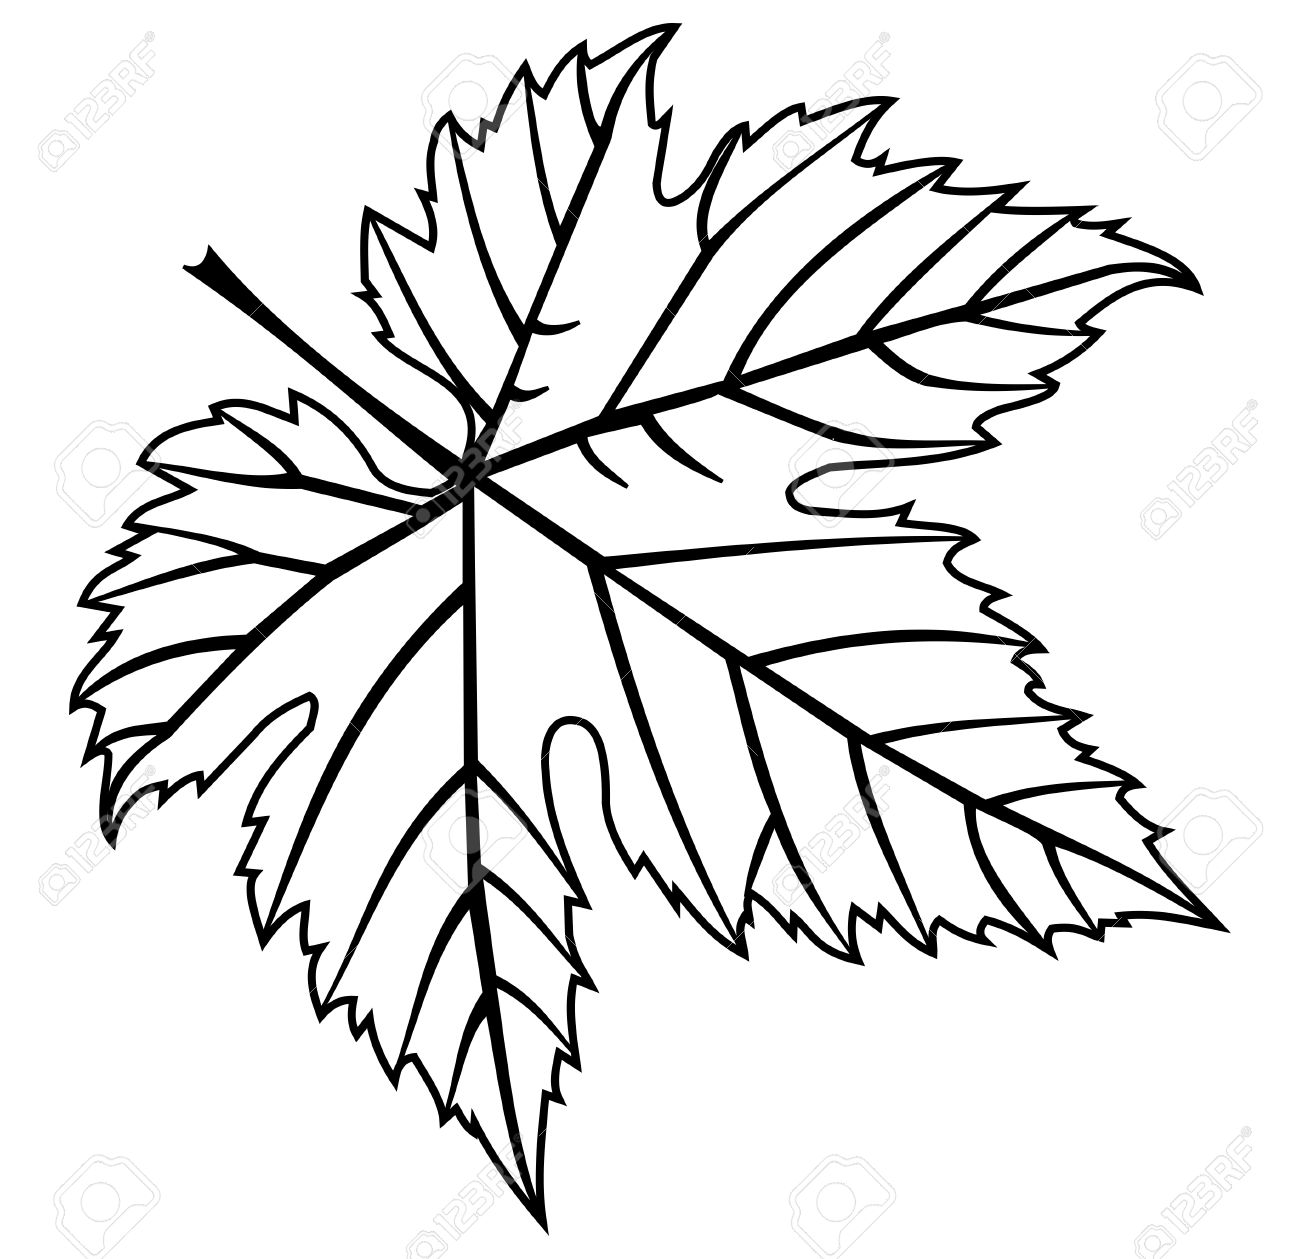 Fig Leaf Drawing at GetDrawings.com | Free for personal use Fig Leaf ...